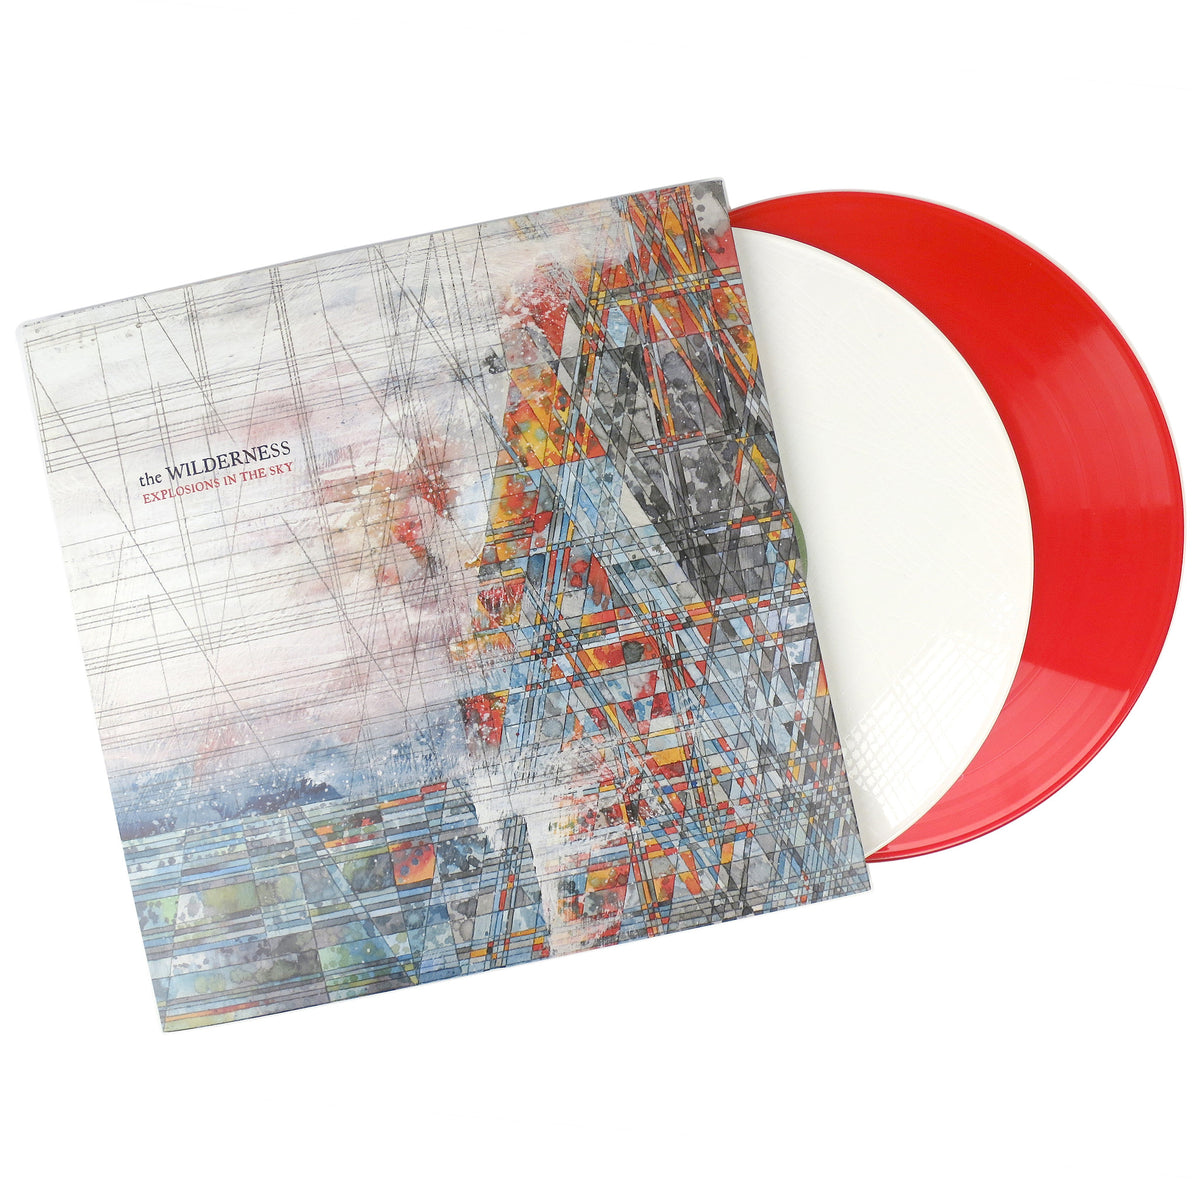 Explosions In The Sky: The Wilderness Indie Vinyl